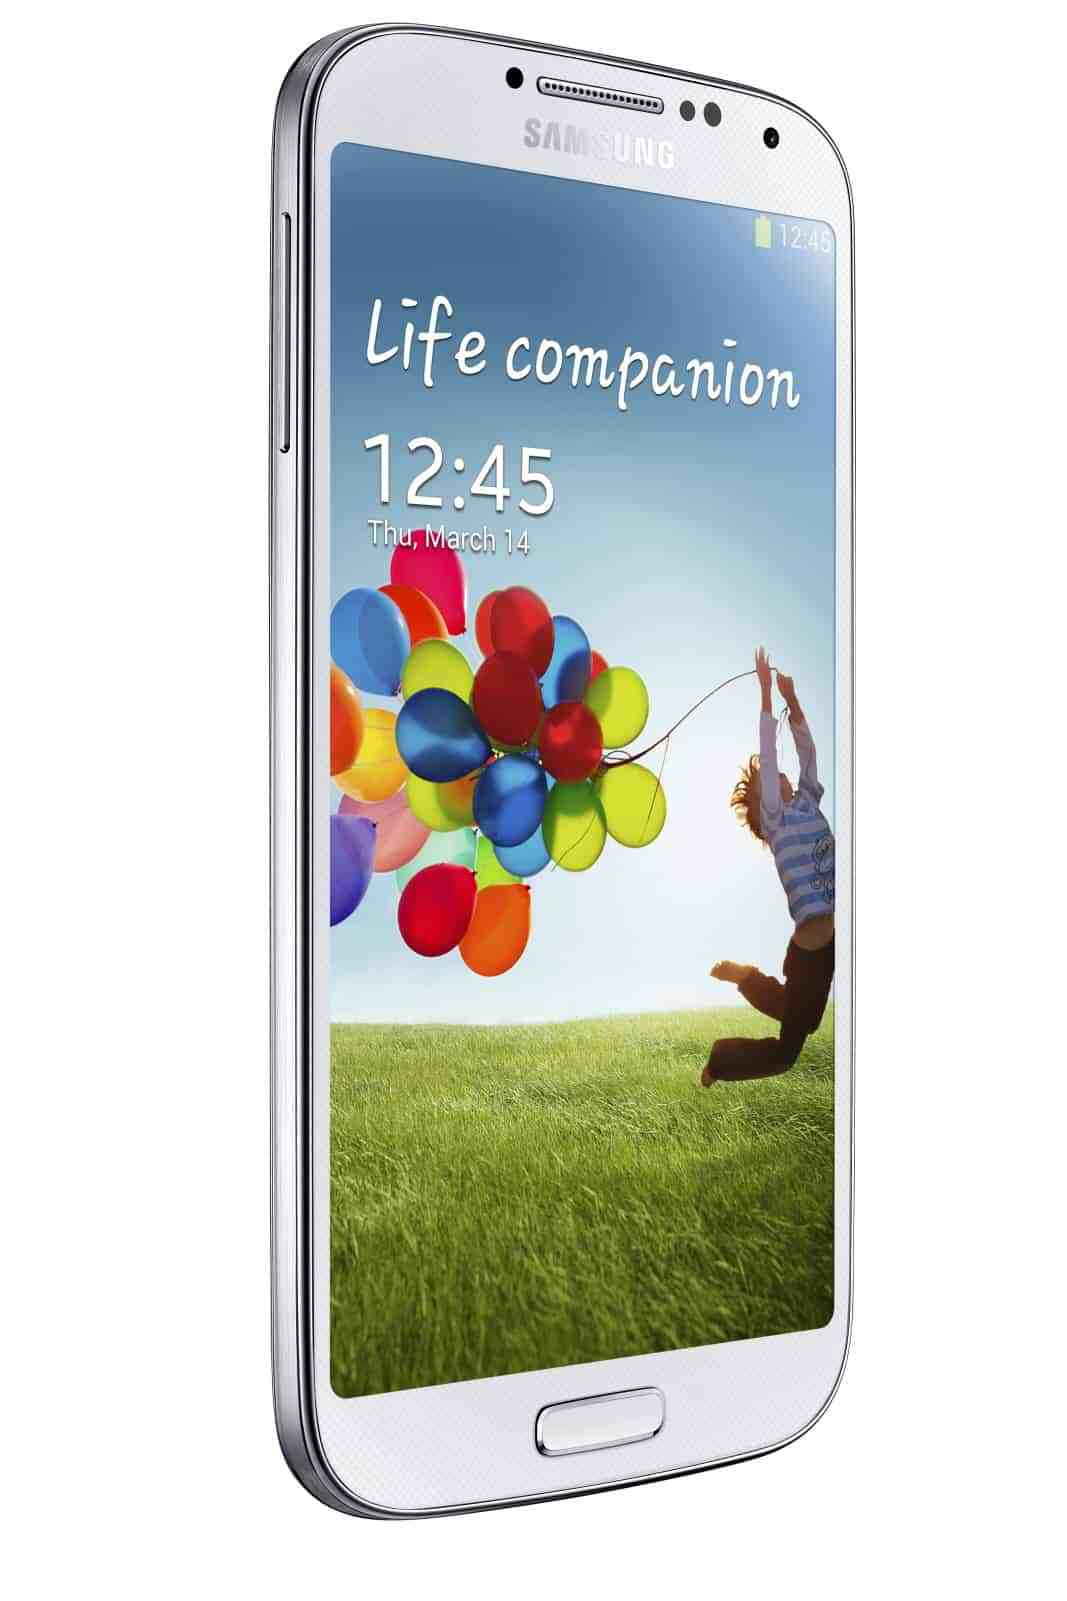 GALAXY-S-4-Product-Image-11